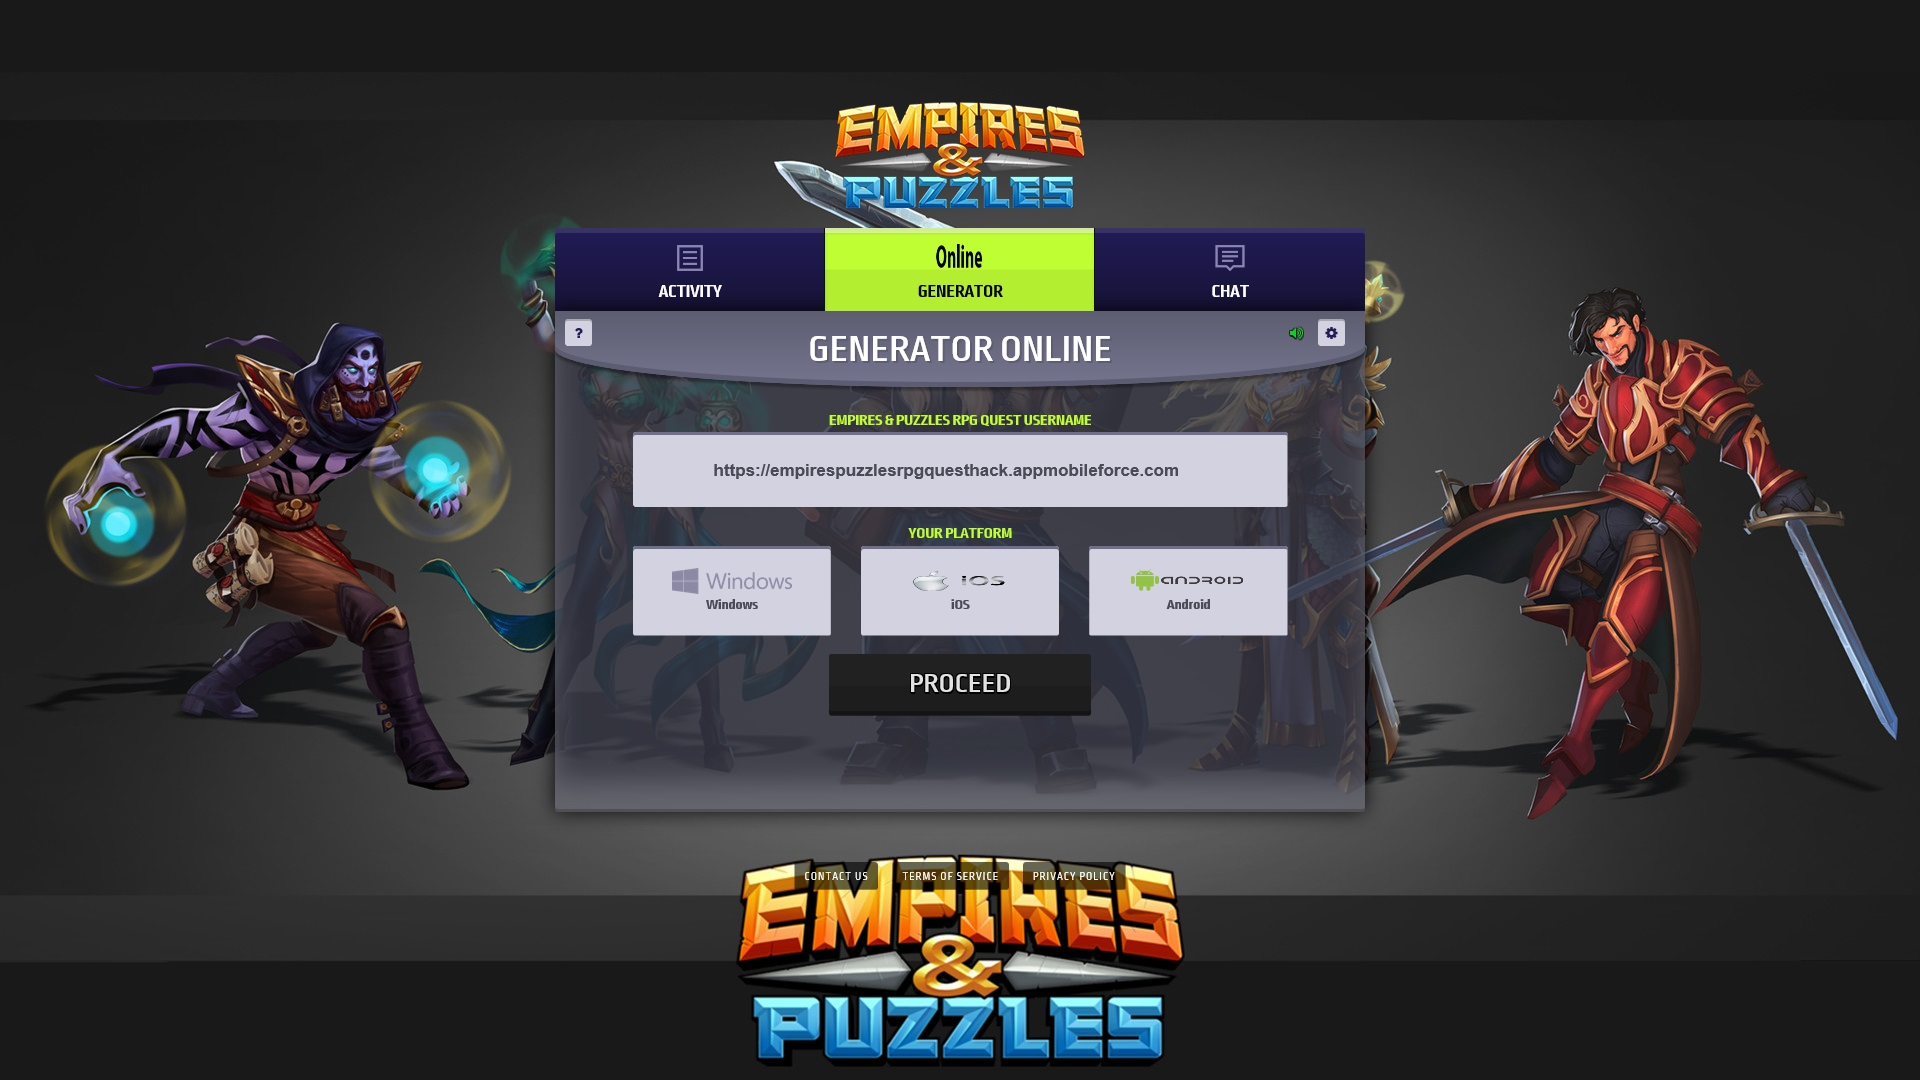 Empire & Puzzles Tipps